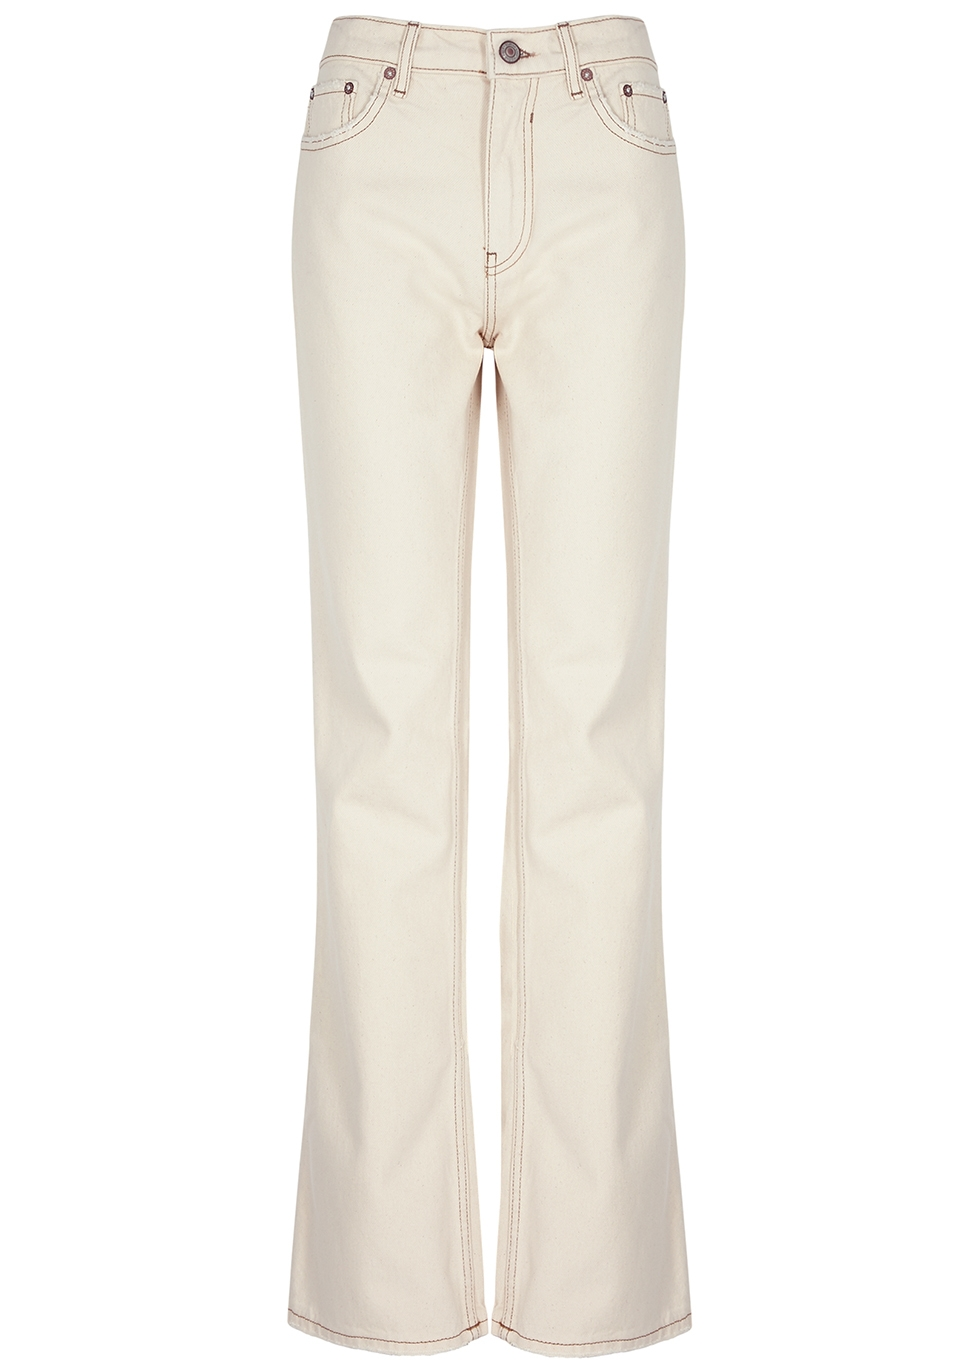 Laurel Canyon ecru flared jeans